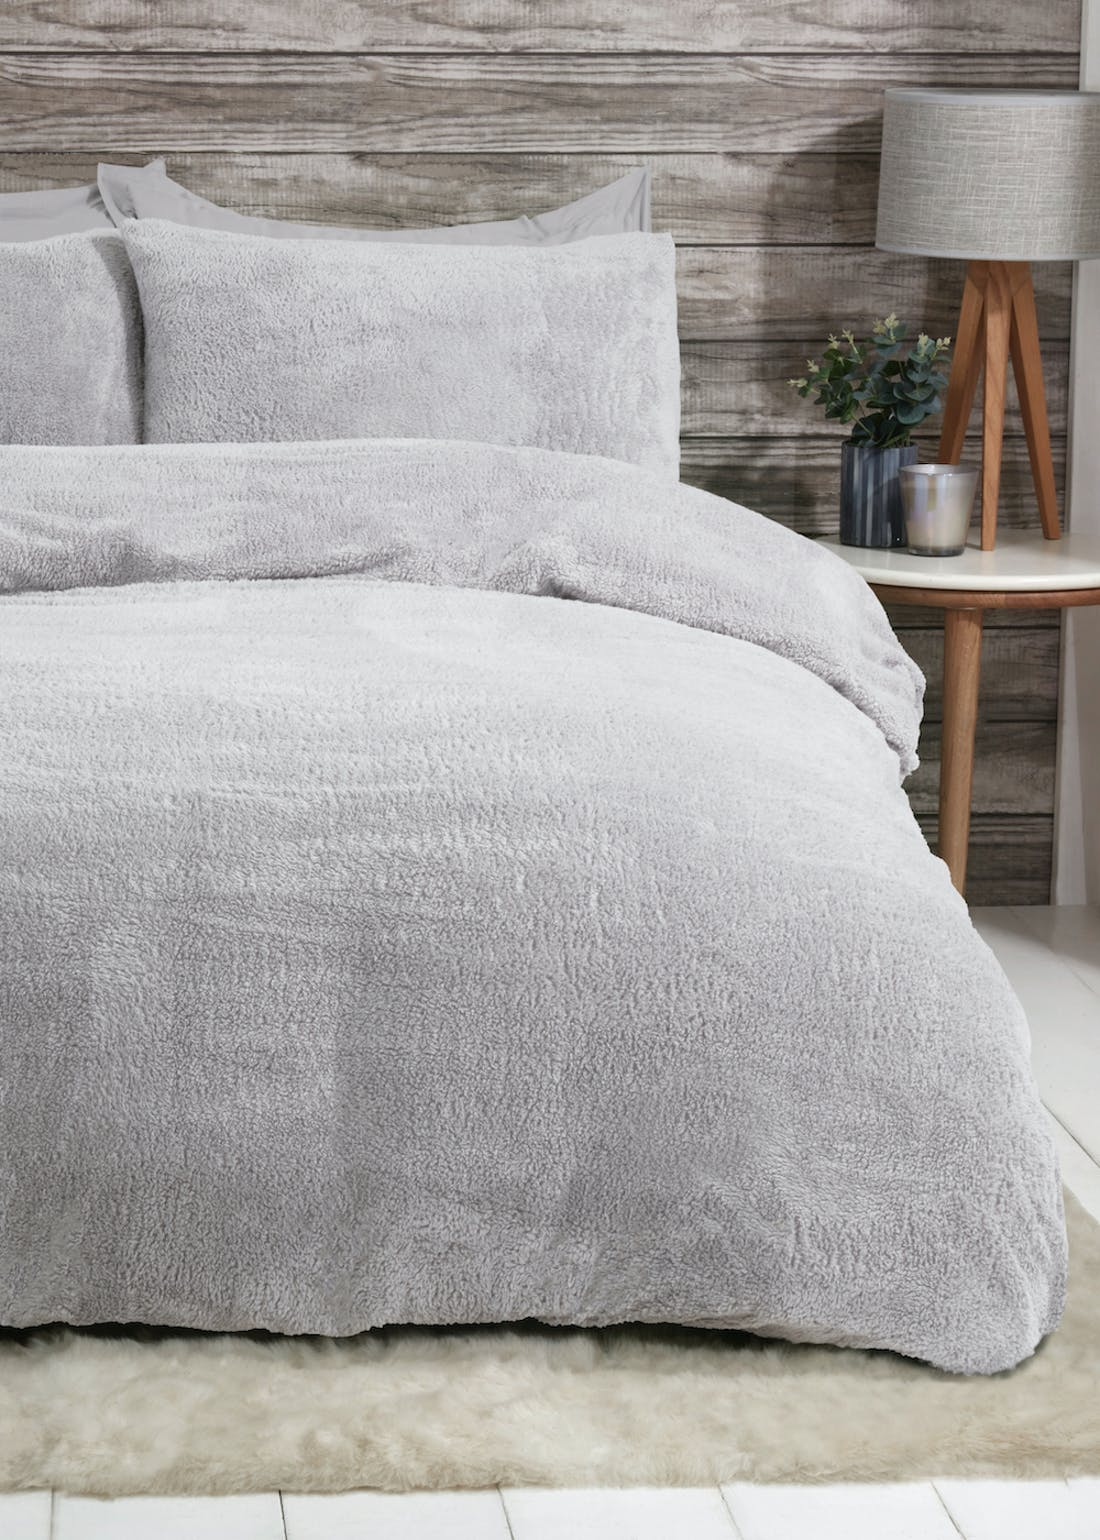 Sleepdown Teddy Fleece Duvet Cover